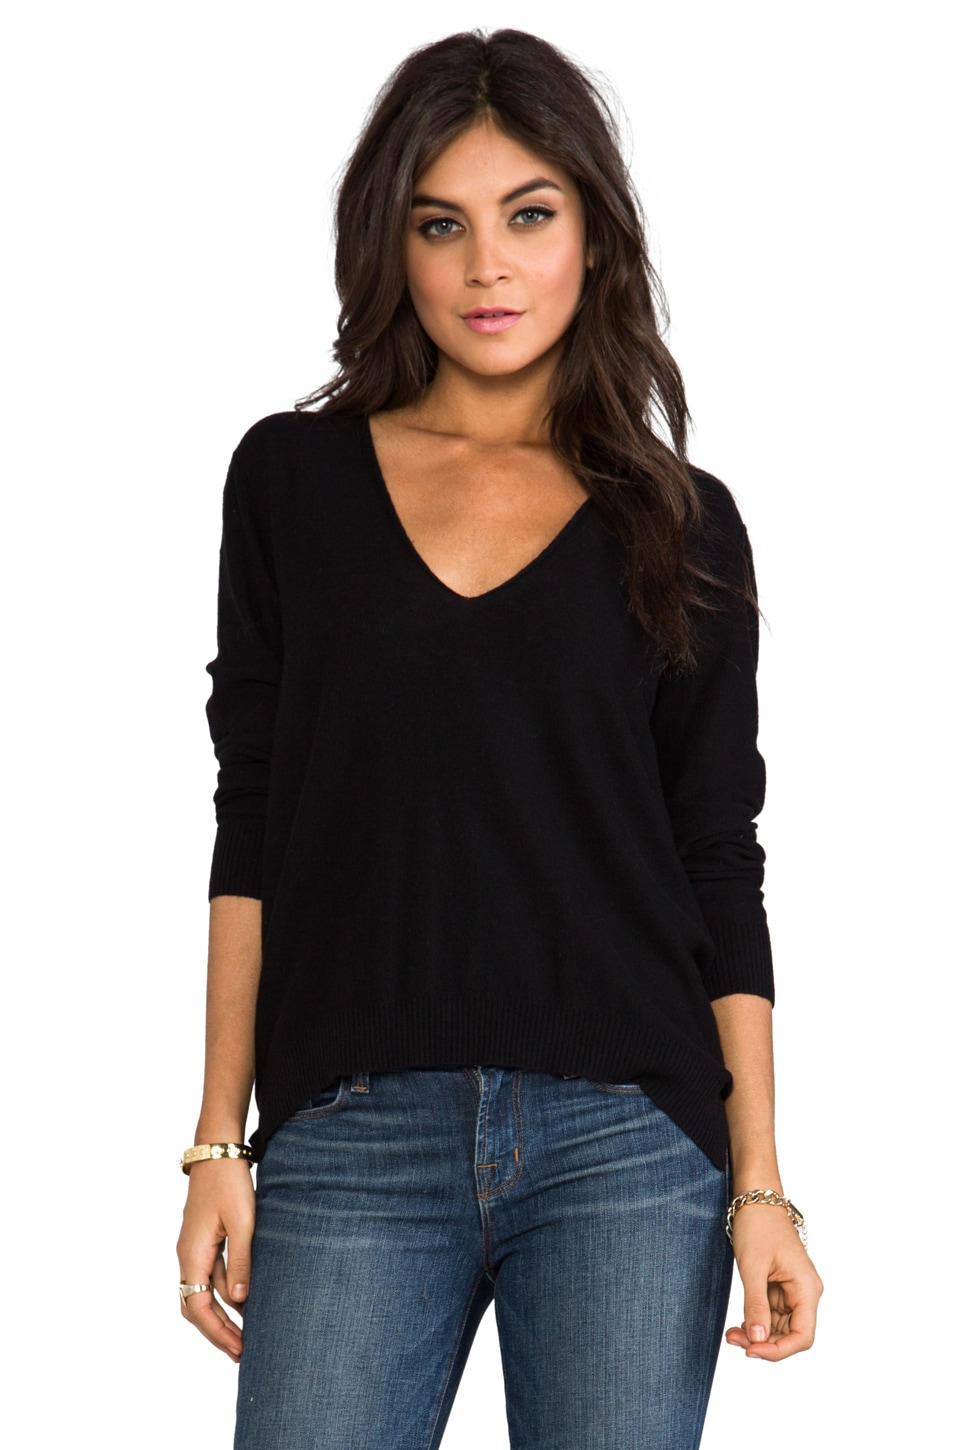 Central Park West Rhinelander Sweater in Black